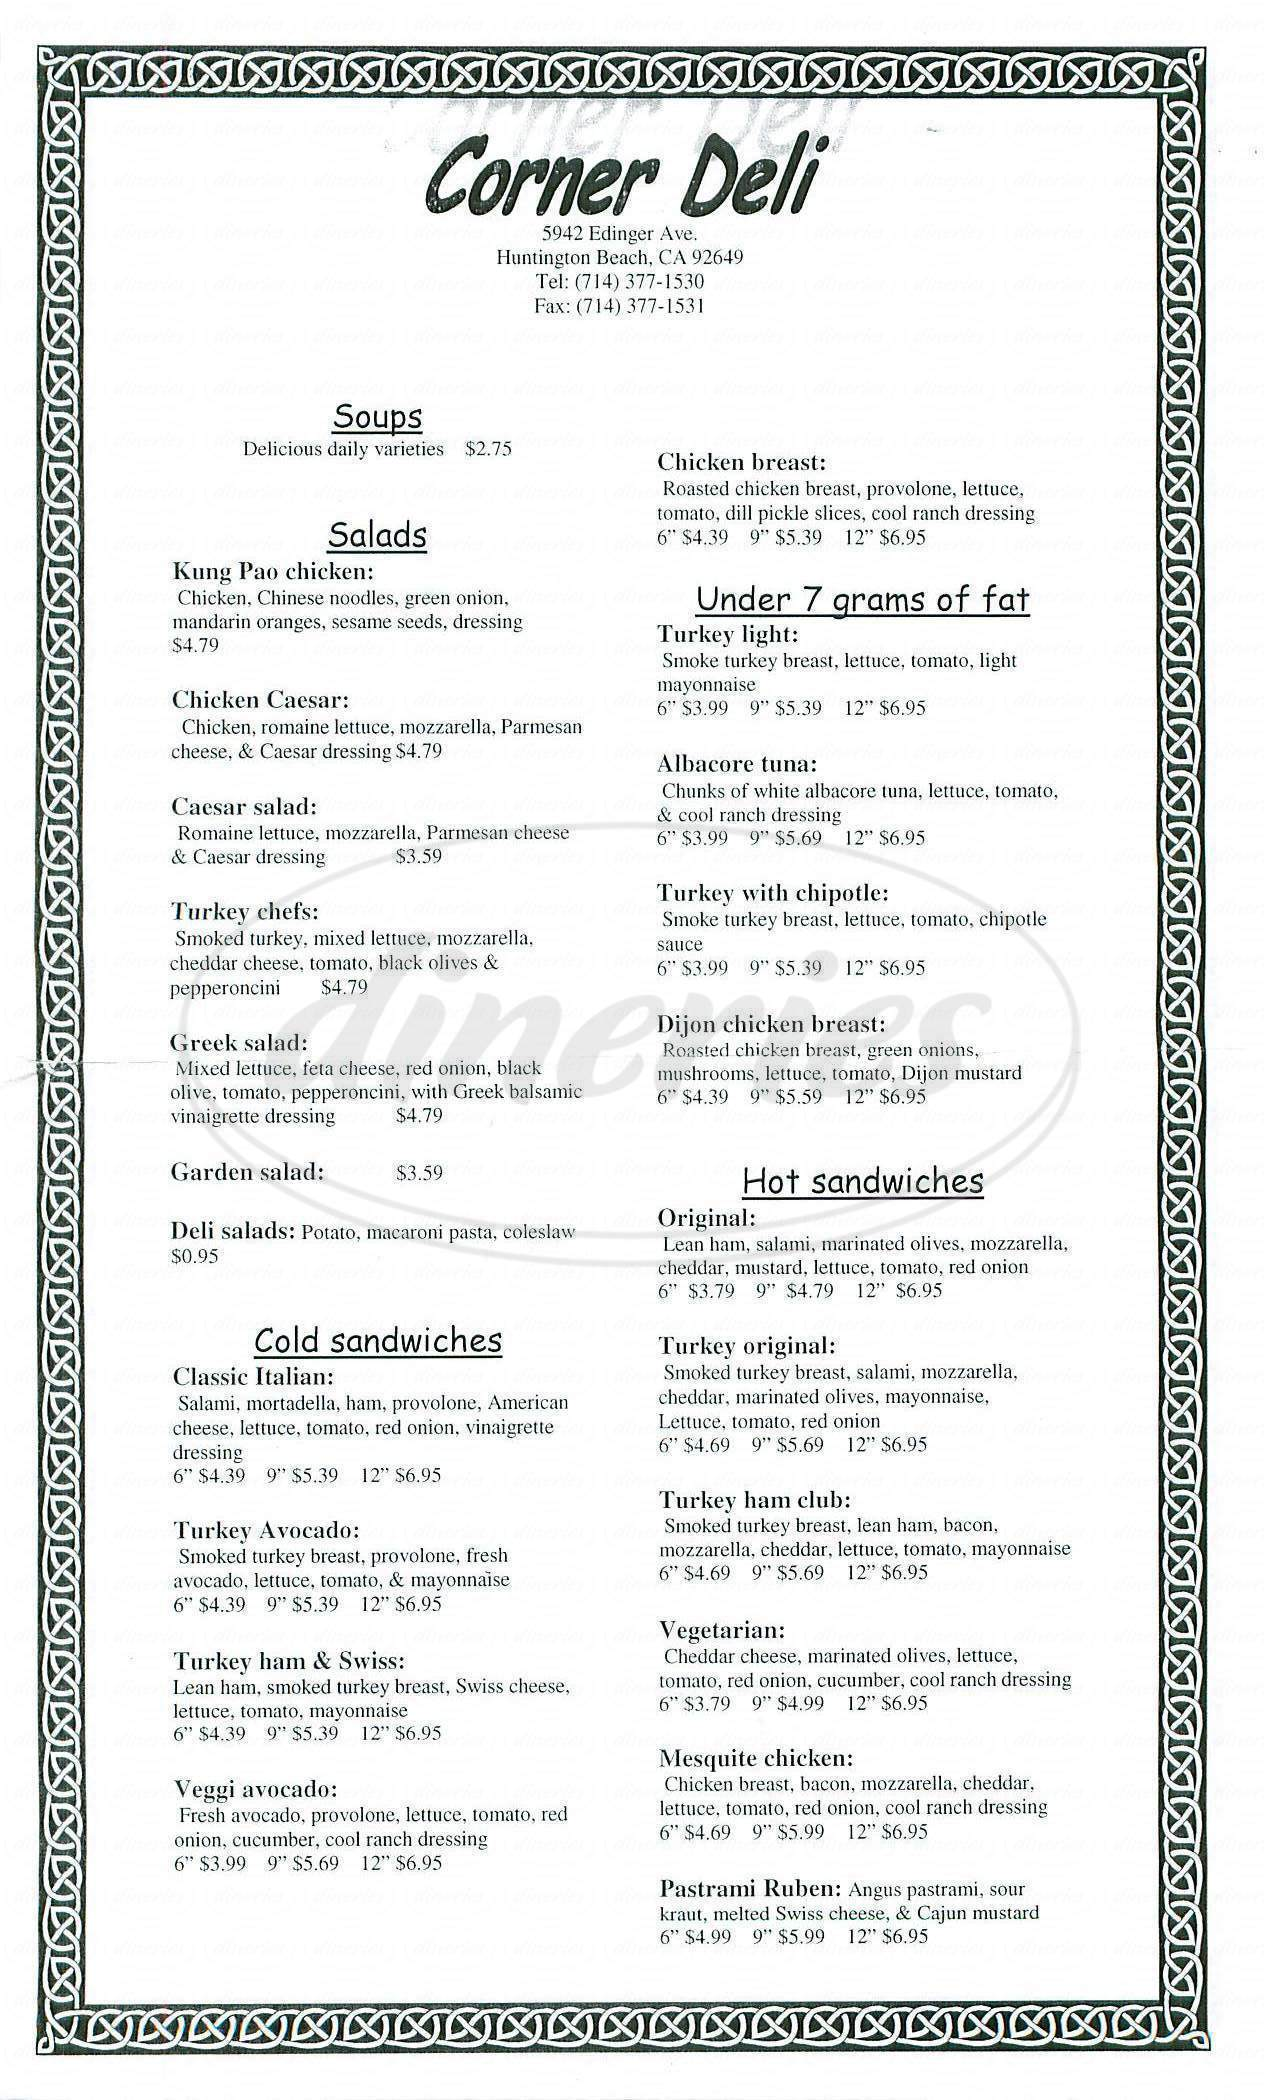 menu for Corner Deli